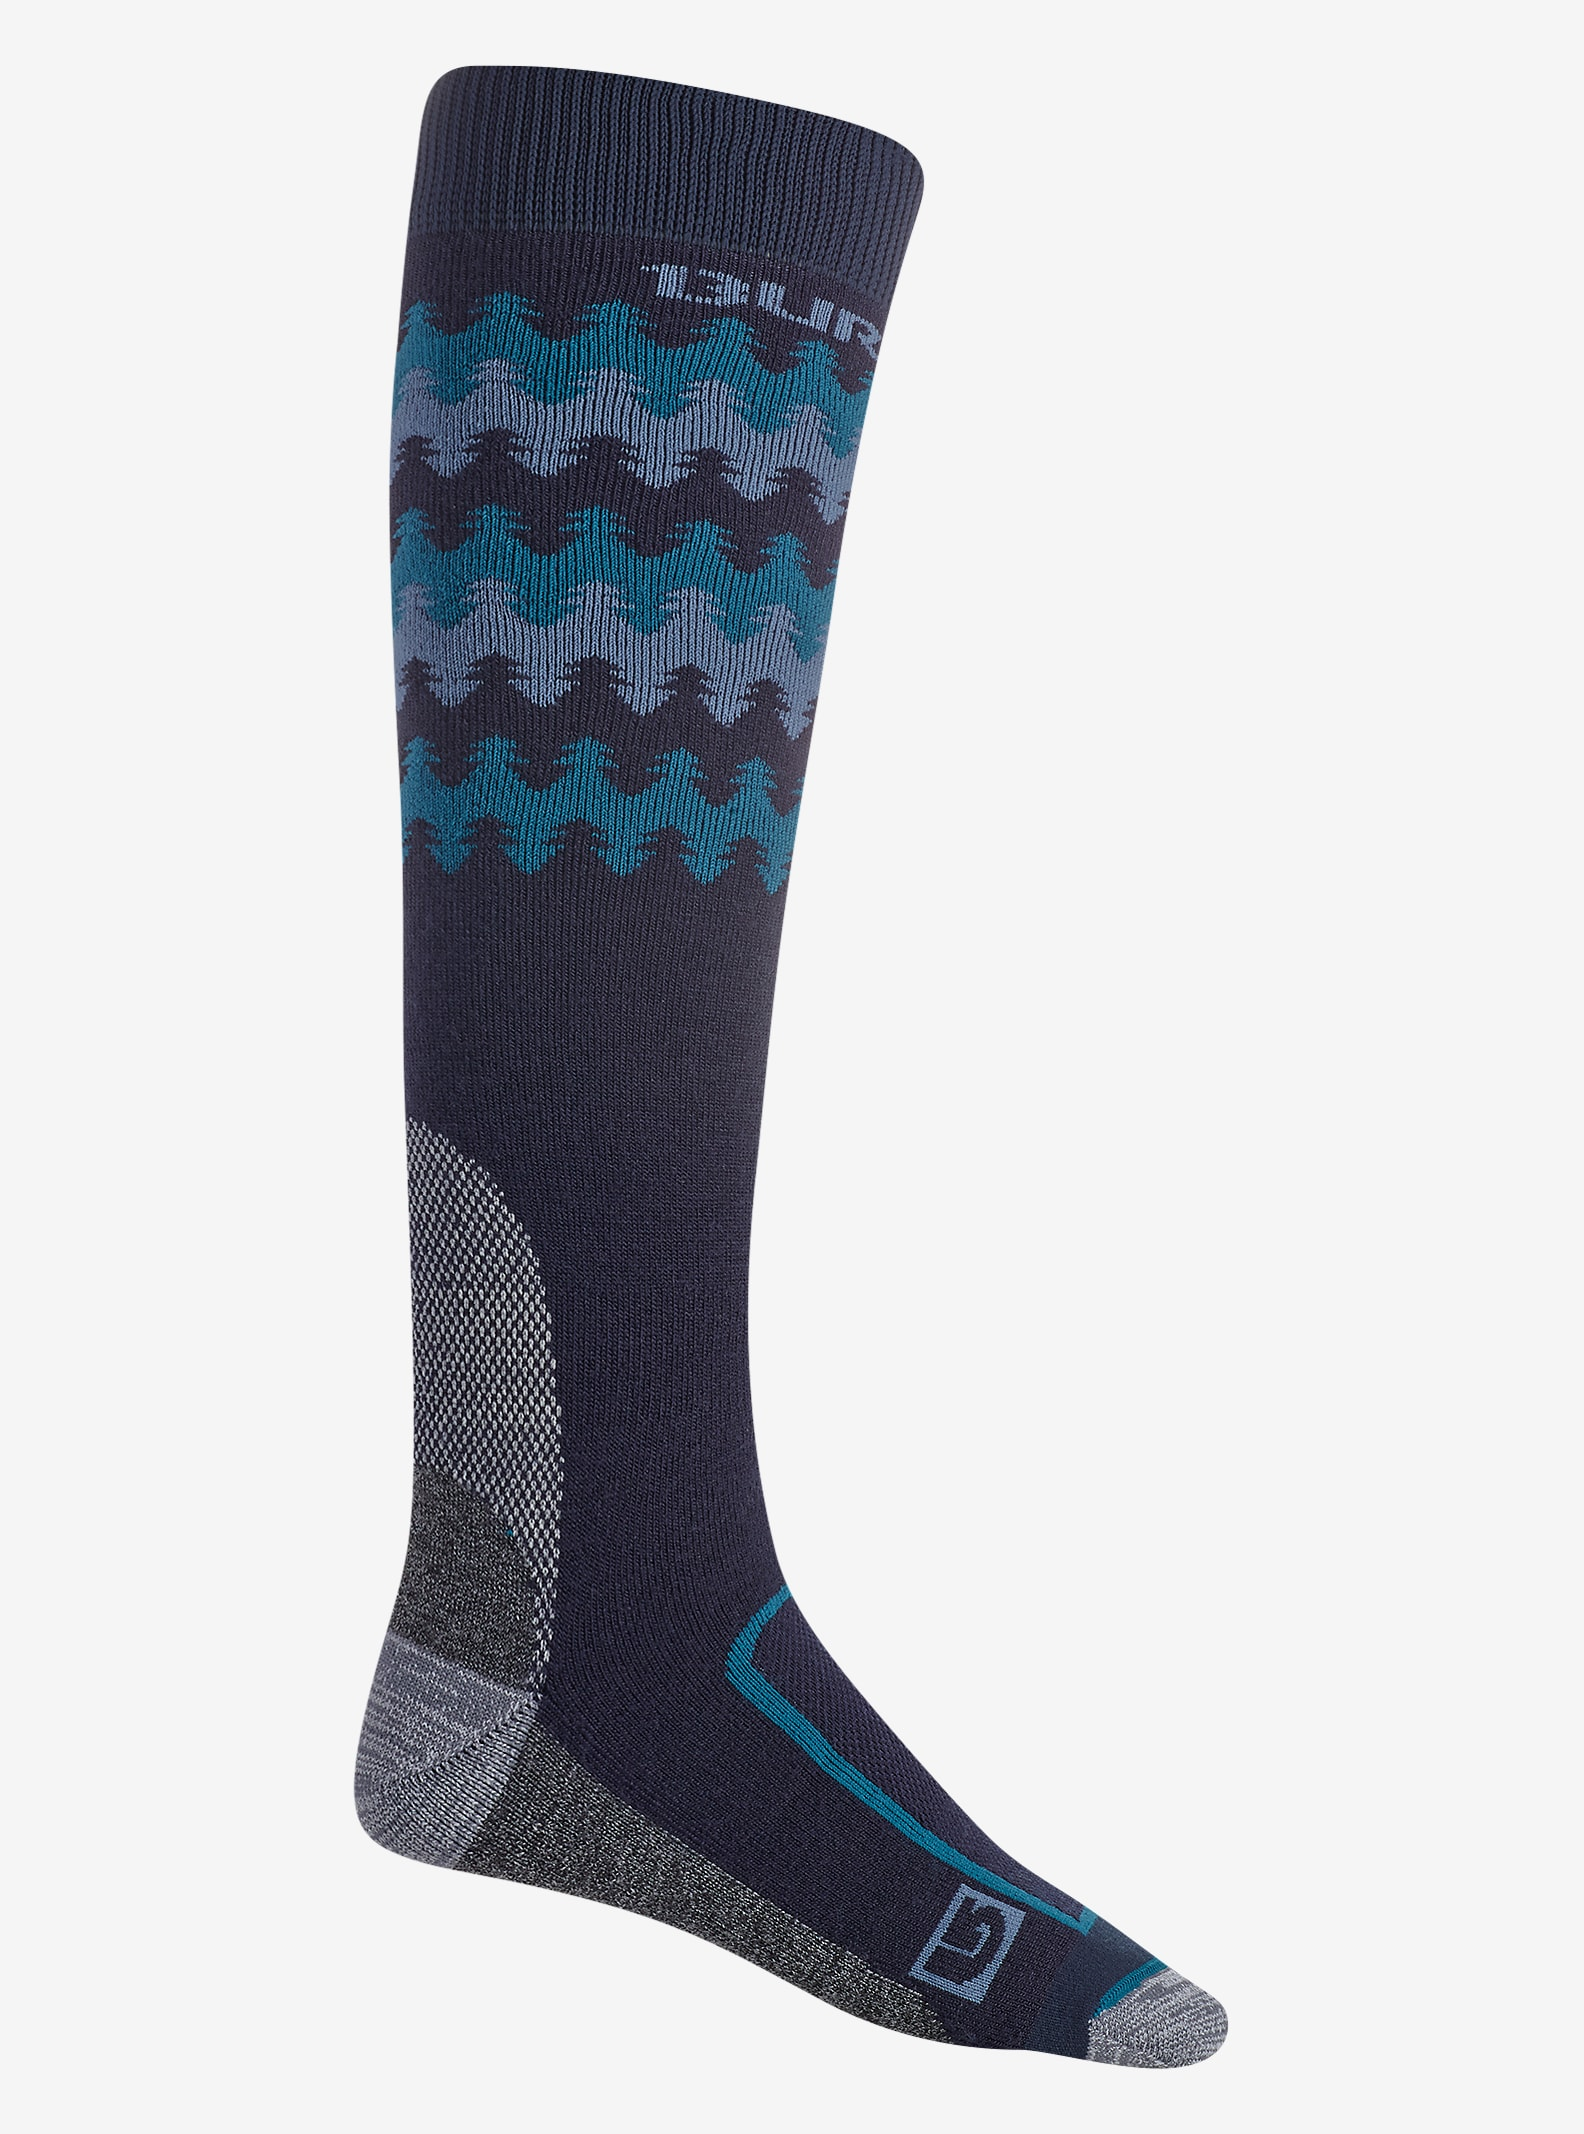 Burton Buffer II Sock shown in Eclipse